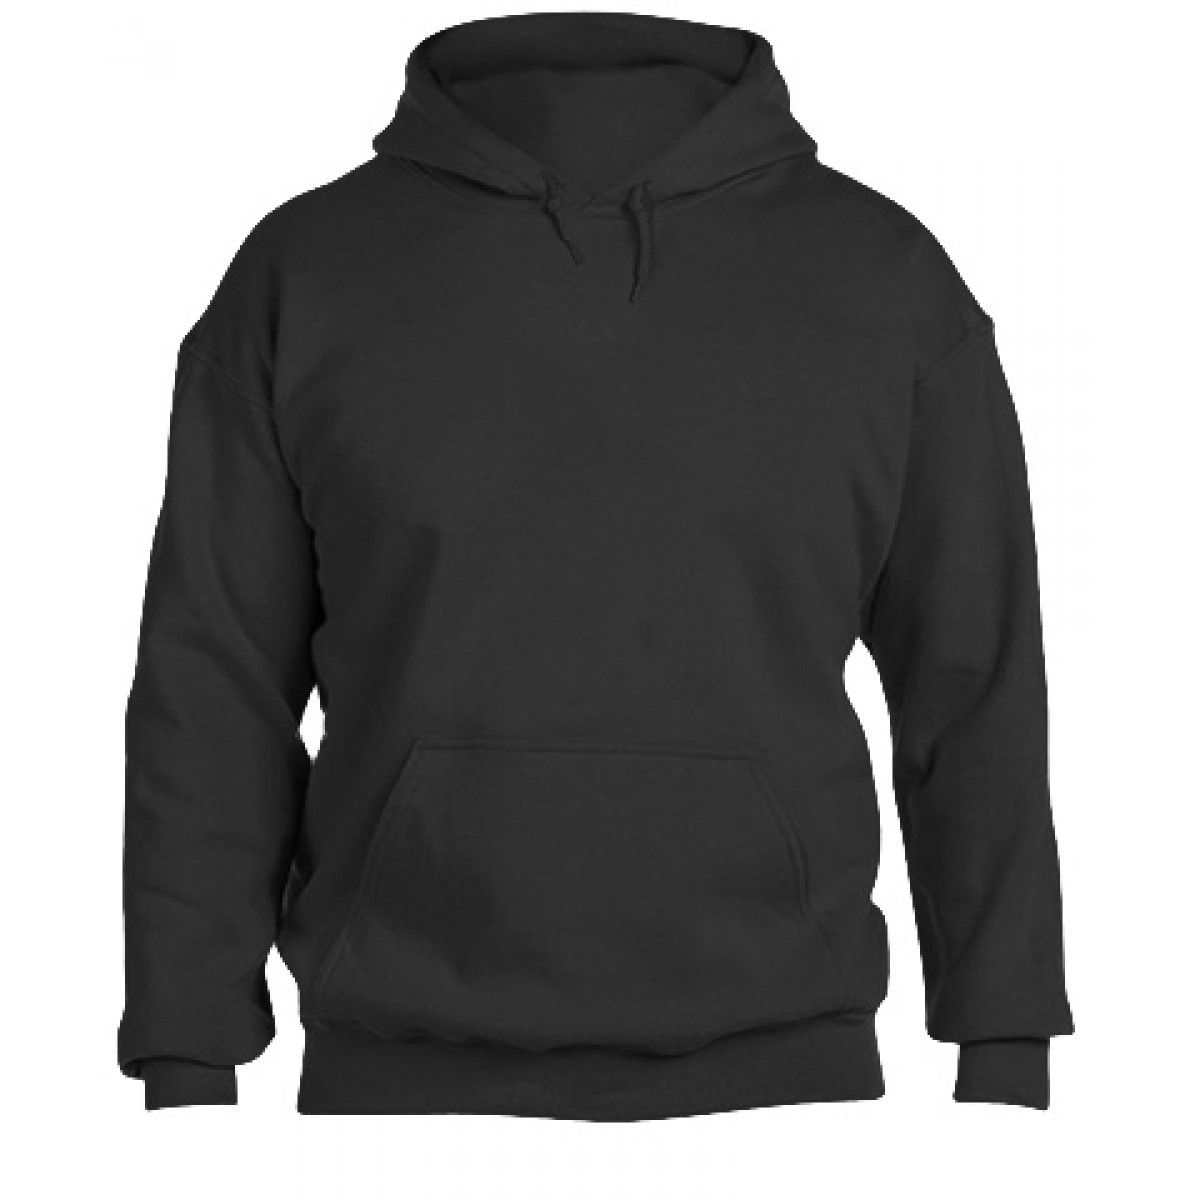 Hooded Sweatshirt 50/50 Heavy Blend -Black-XL